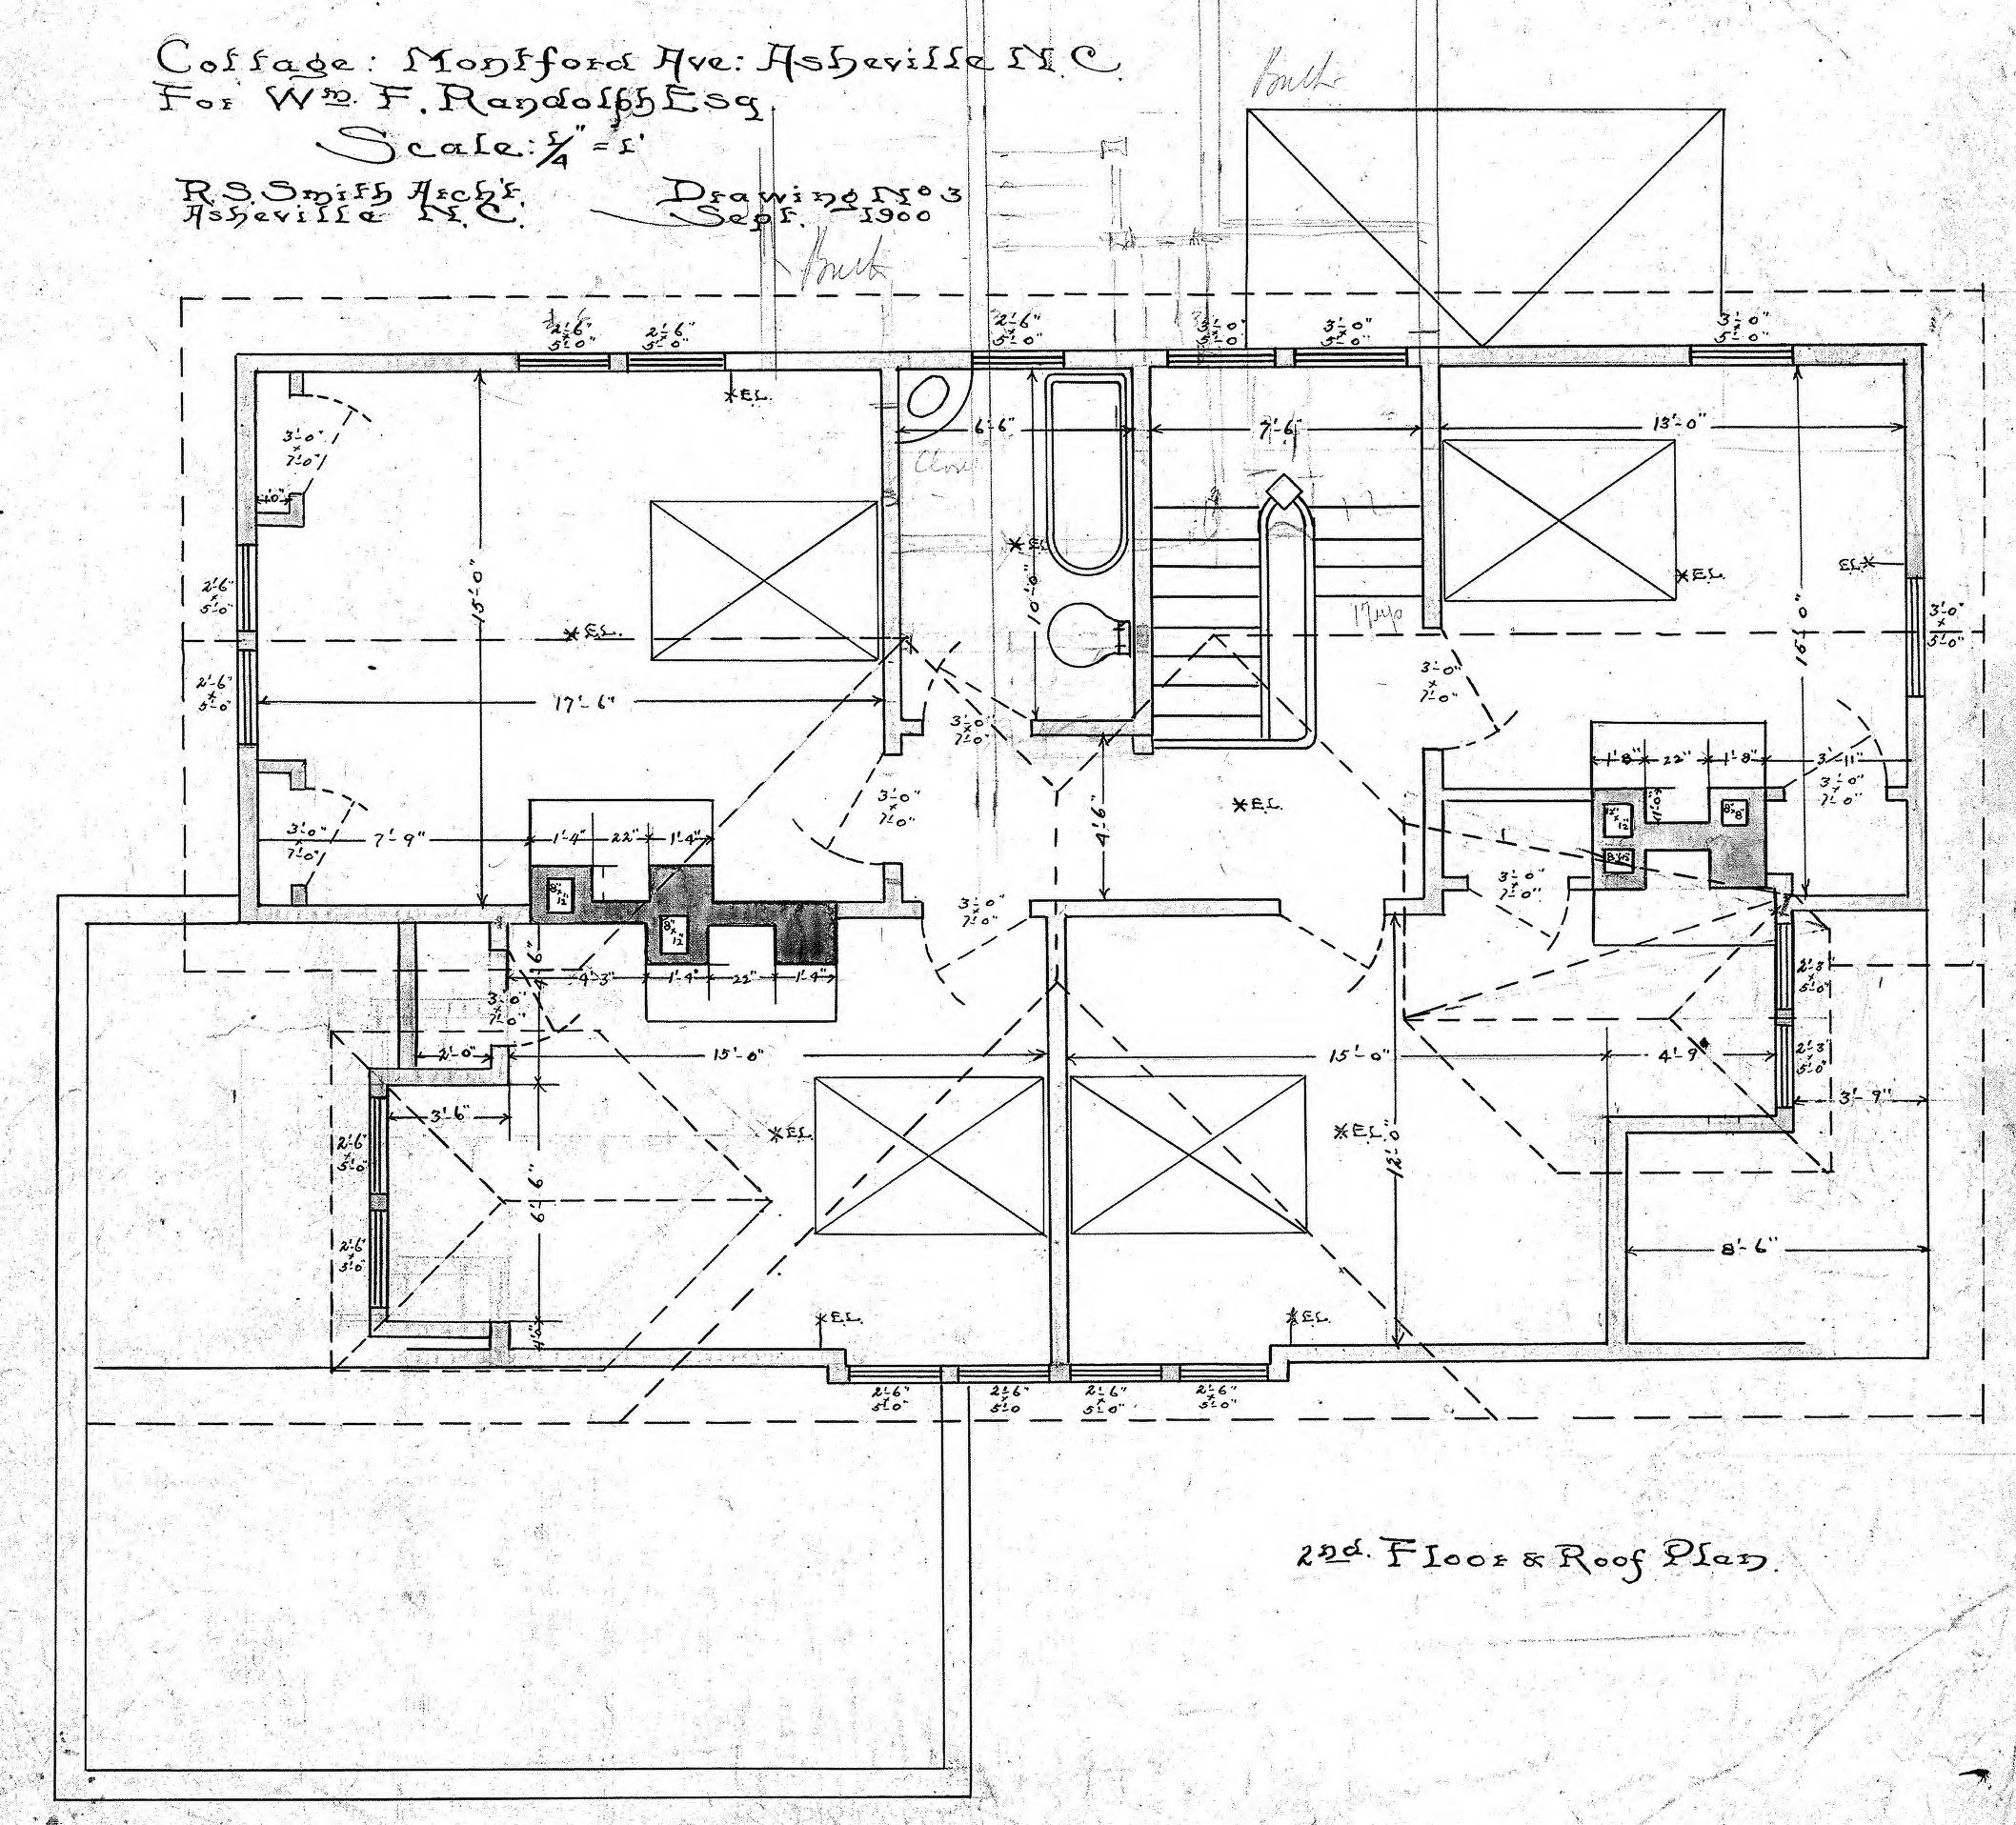 Roof Plan Drawing Of Cottage Montford Ave Wm F Randolph 2nd Floor Roof